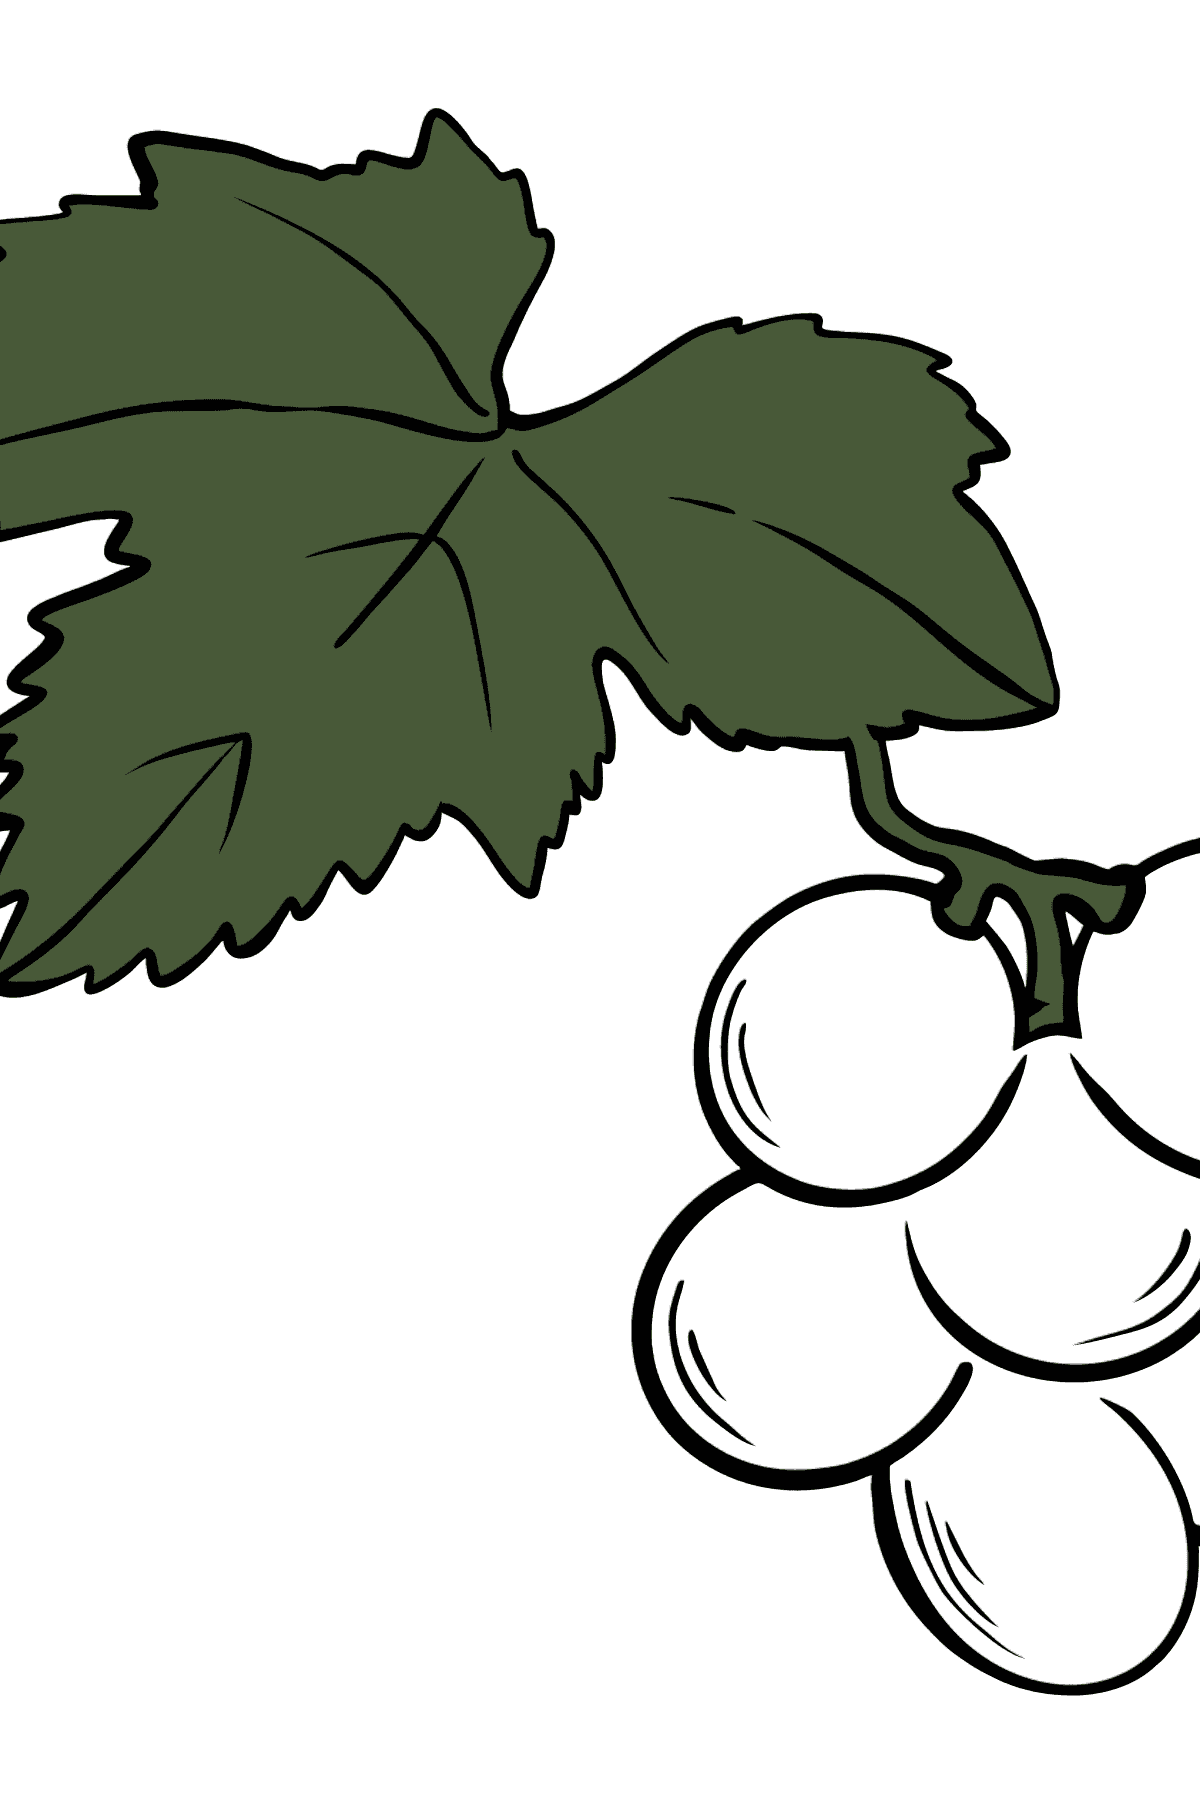 Grapes coloring page - Coloring Pages for Kids